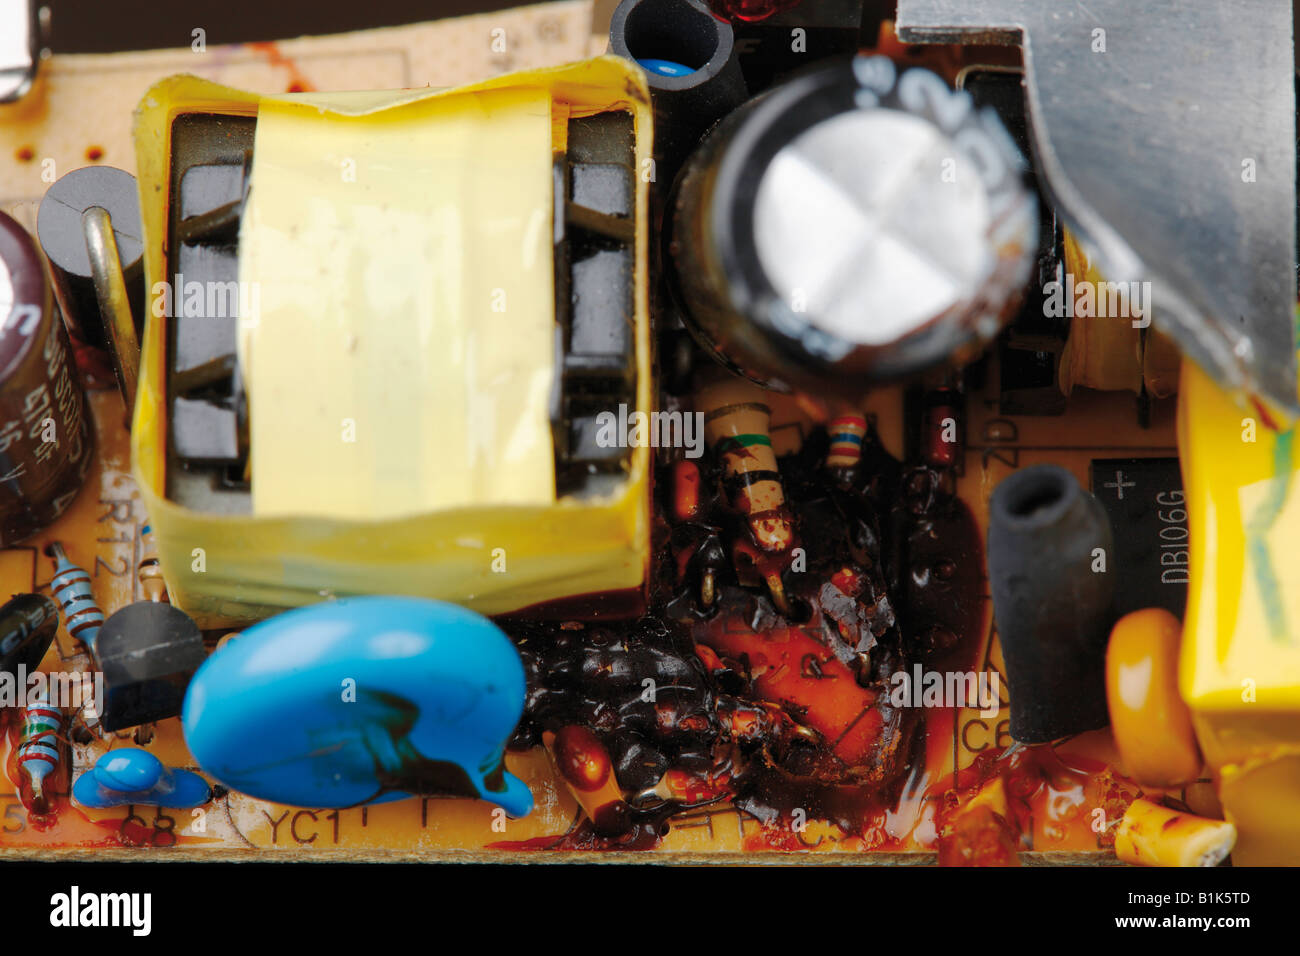 Broken circuit board with bursted capacitor - Stock Image